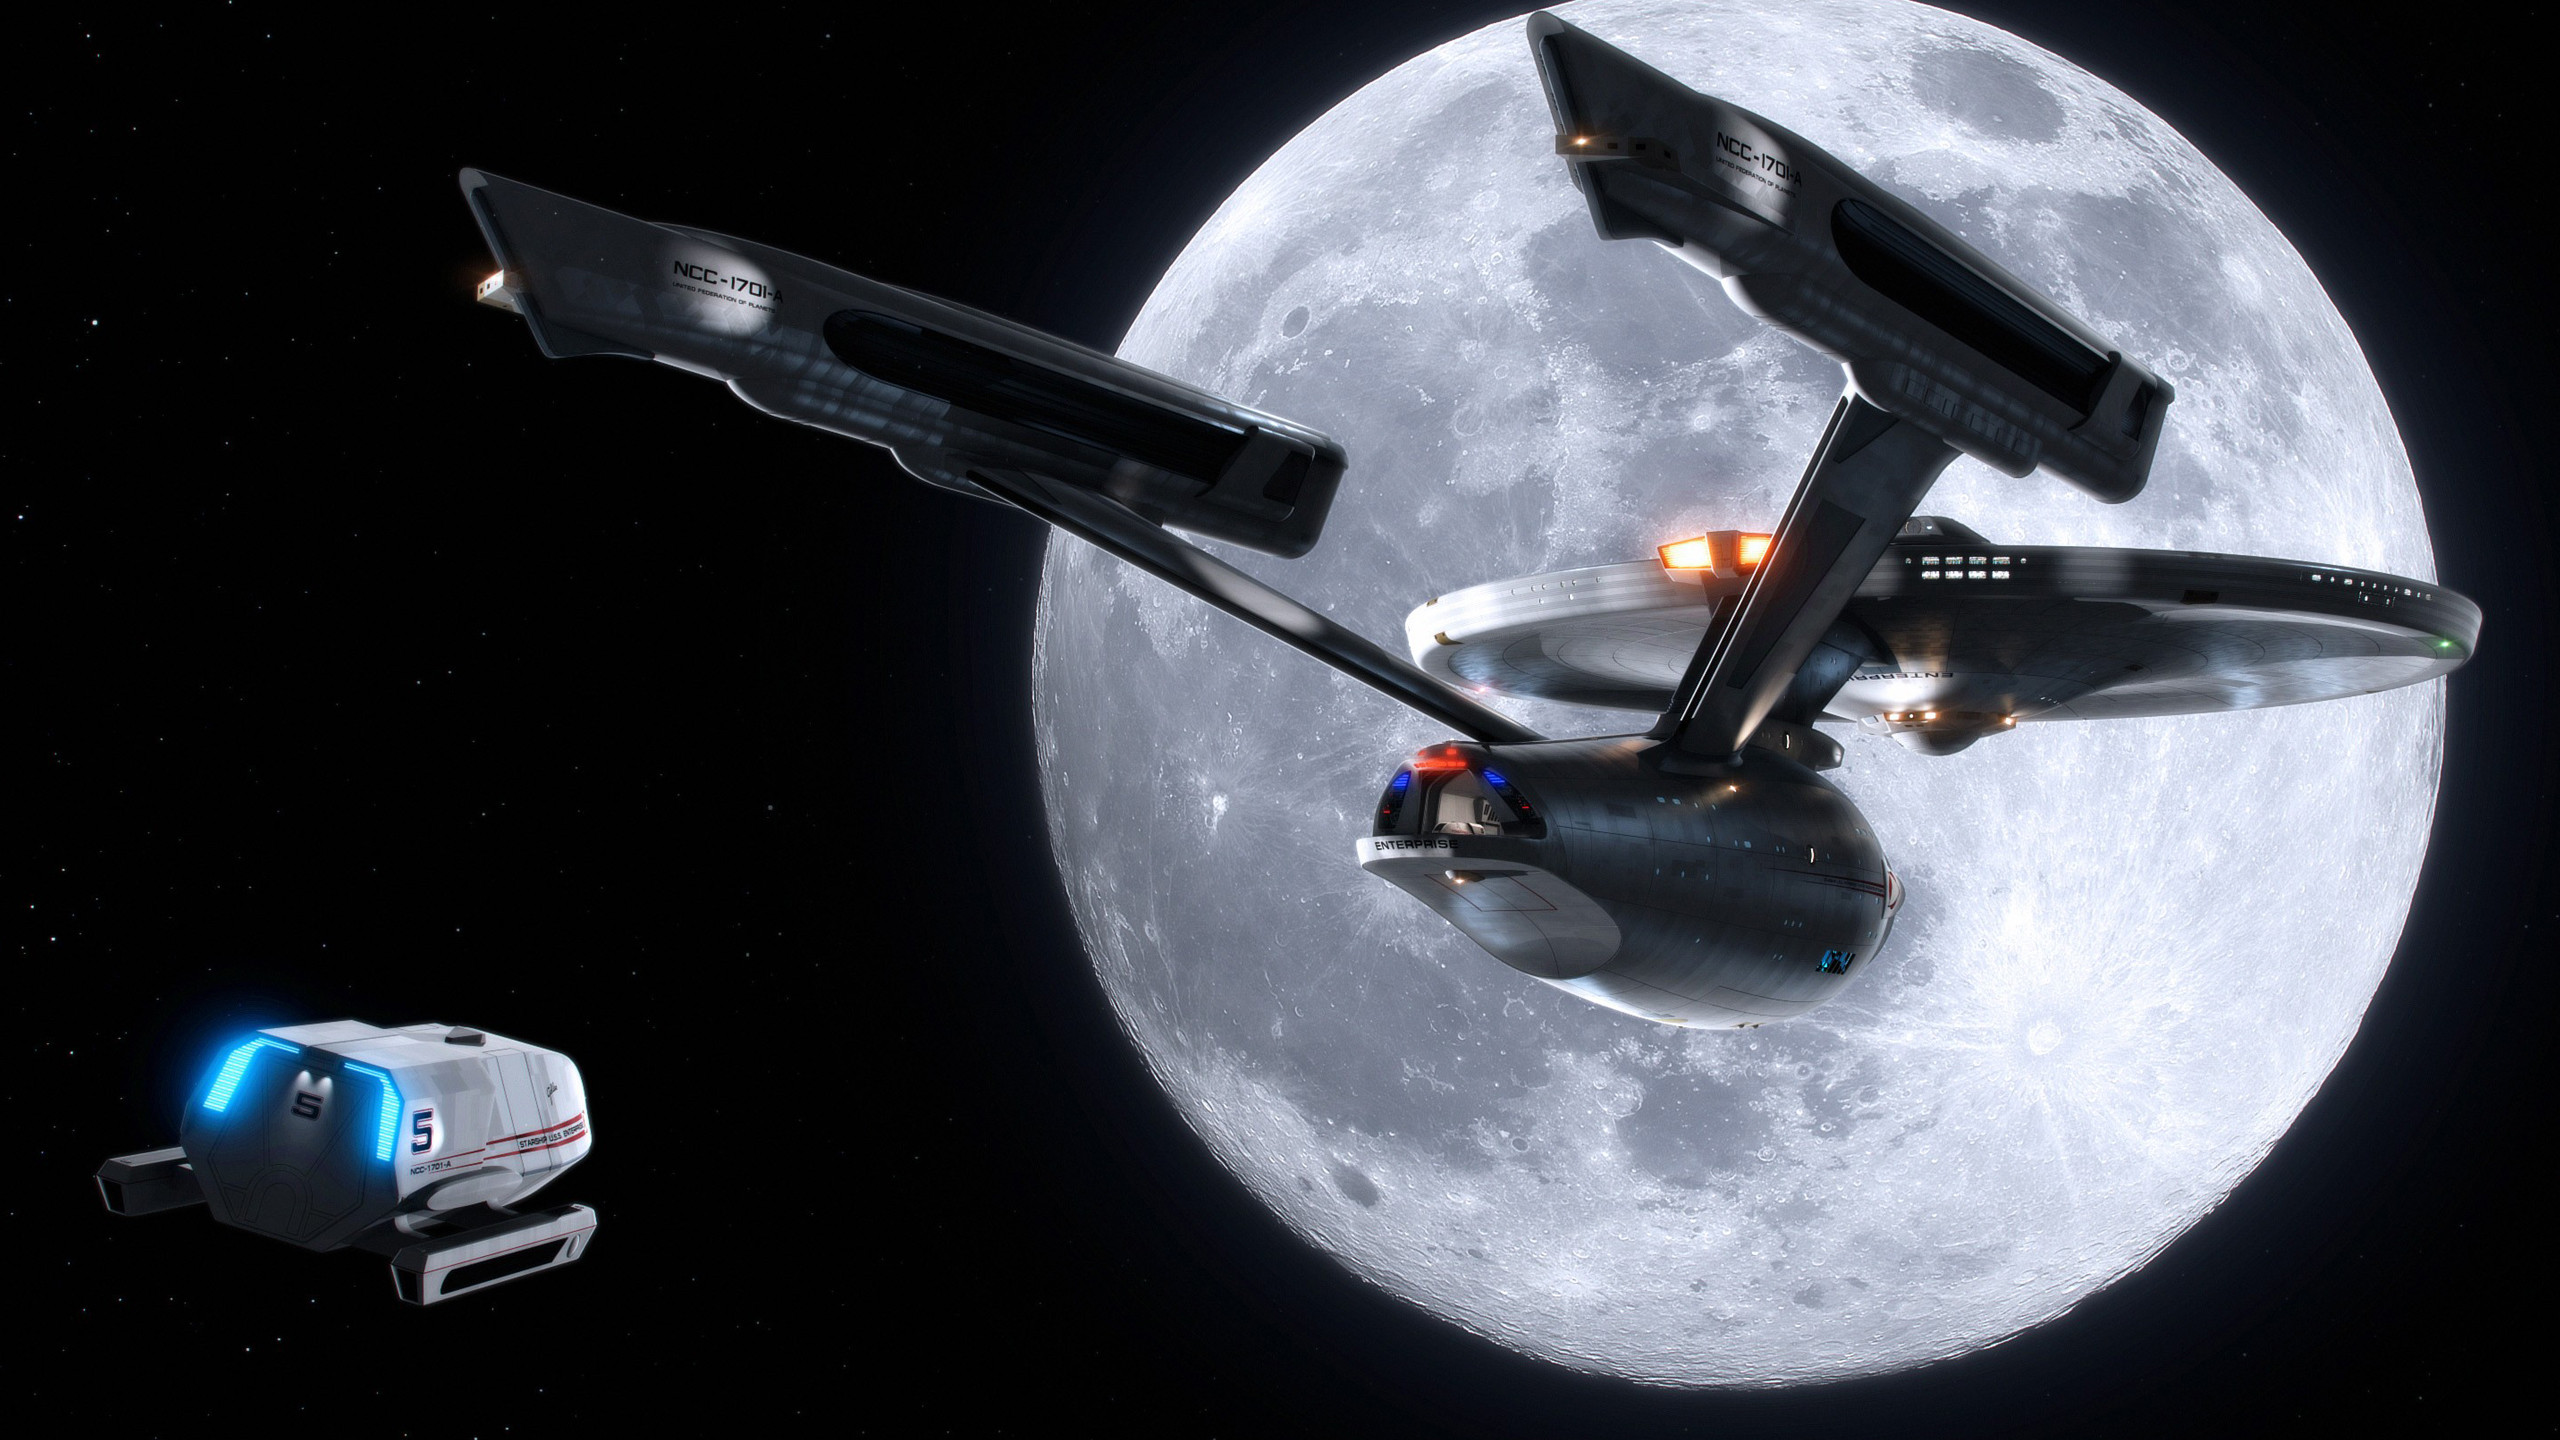 enterprise e wallpaper hd - photo #10